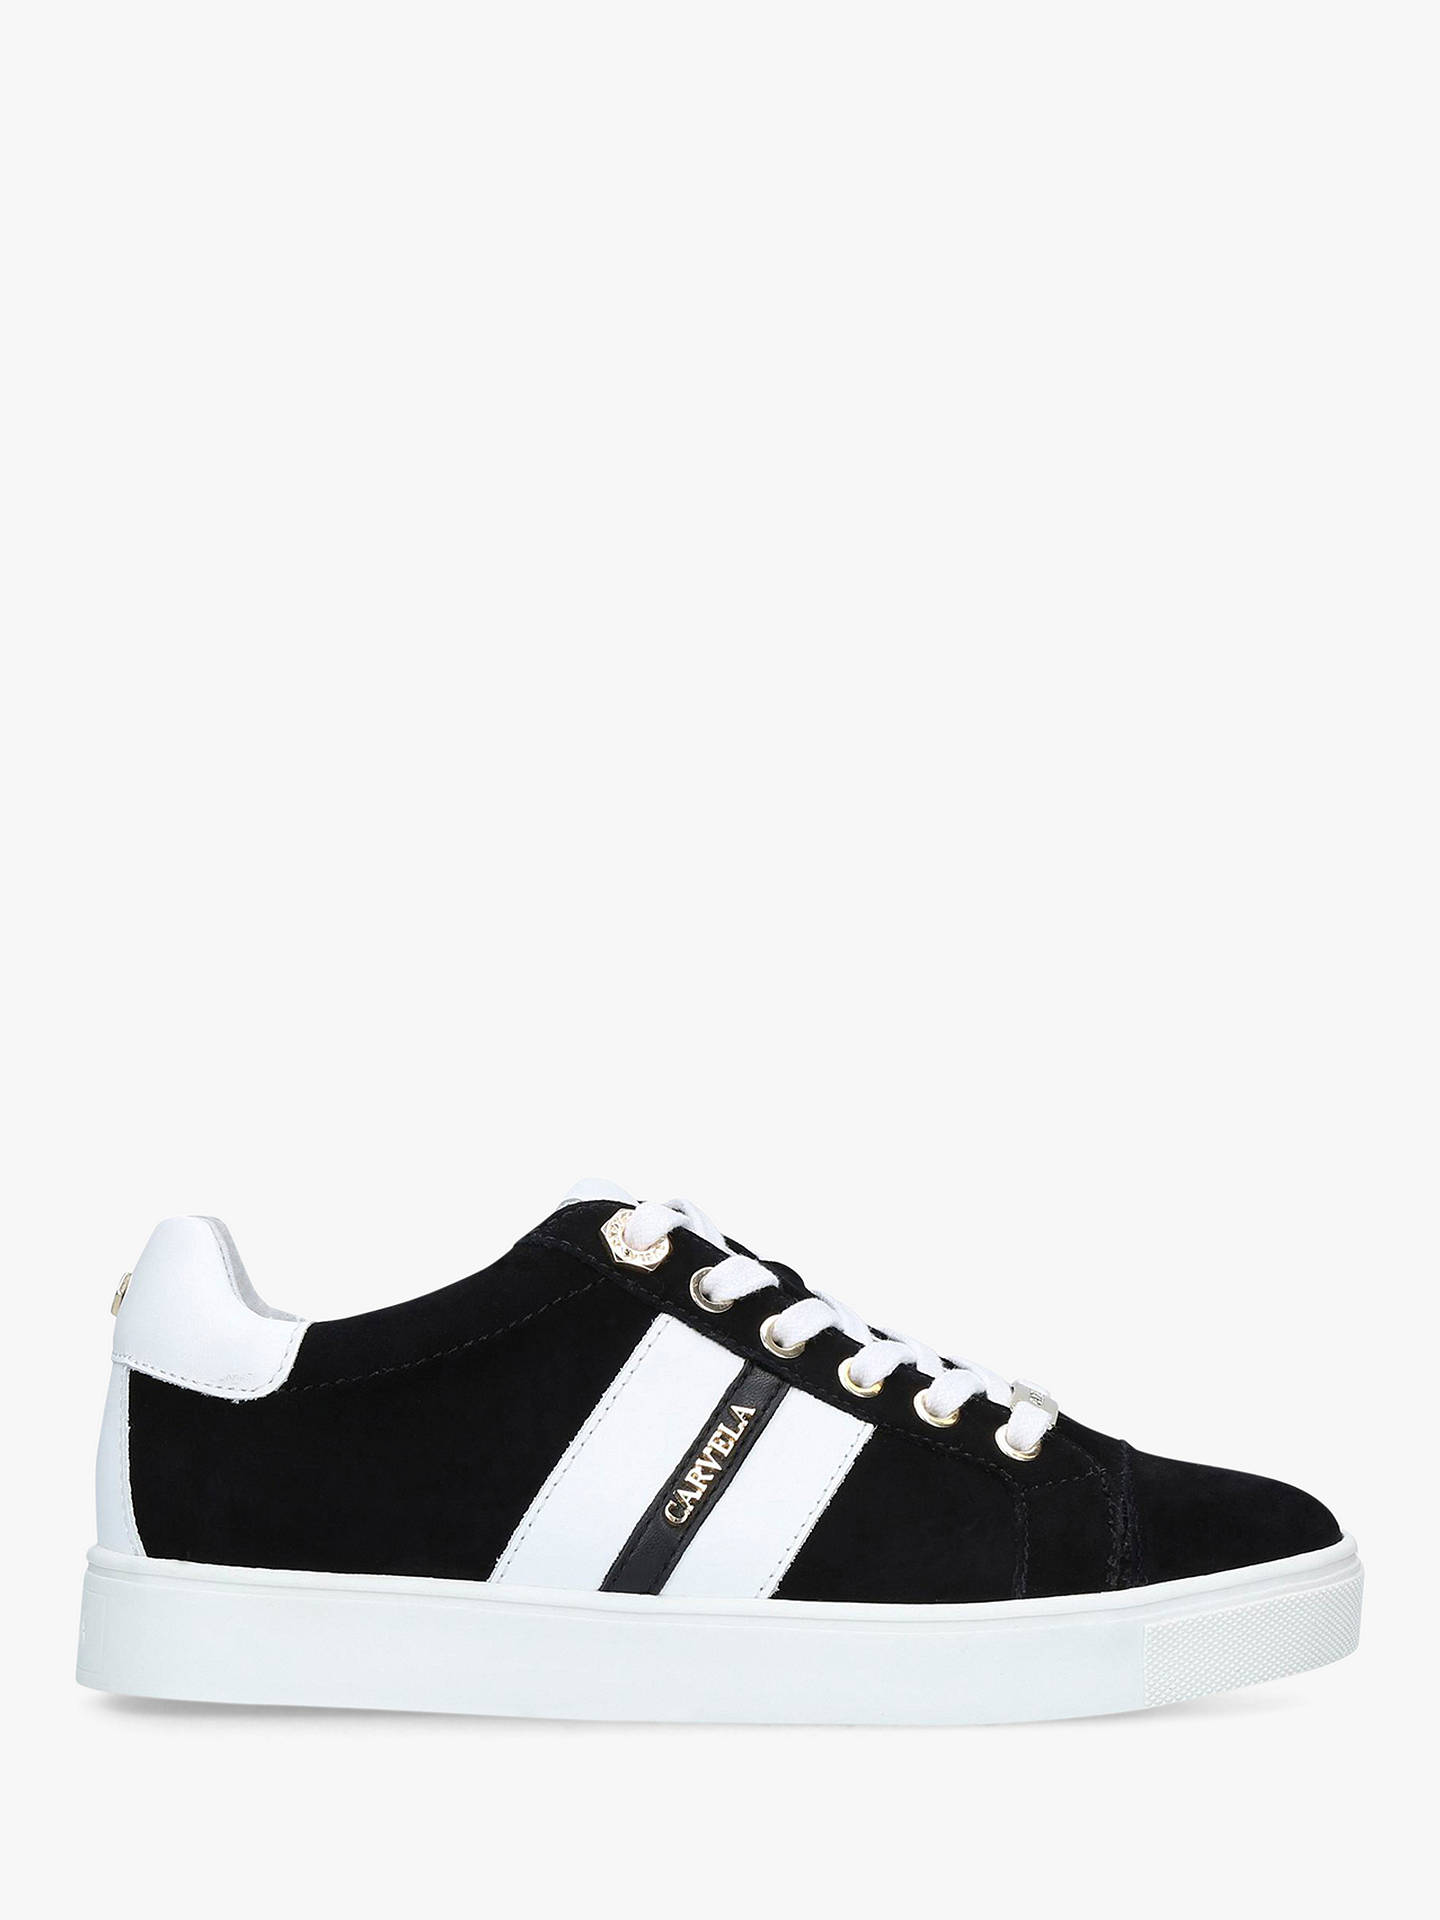 select for clearance sale uk utterly stylish Carvela Lisa 2 Low Top Trainers at John Lewis & Partners